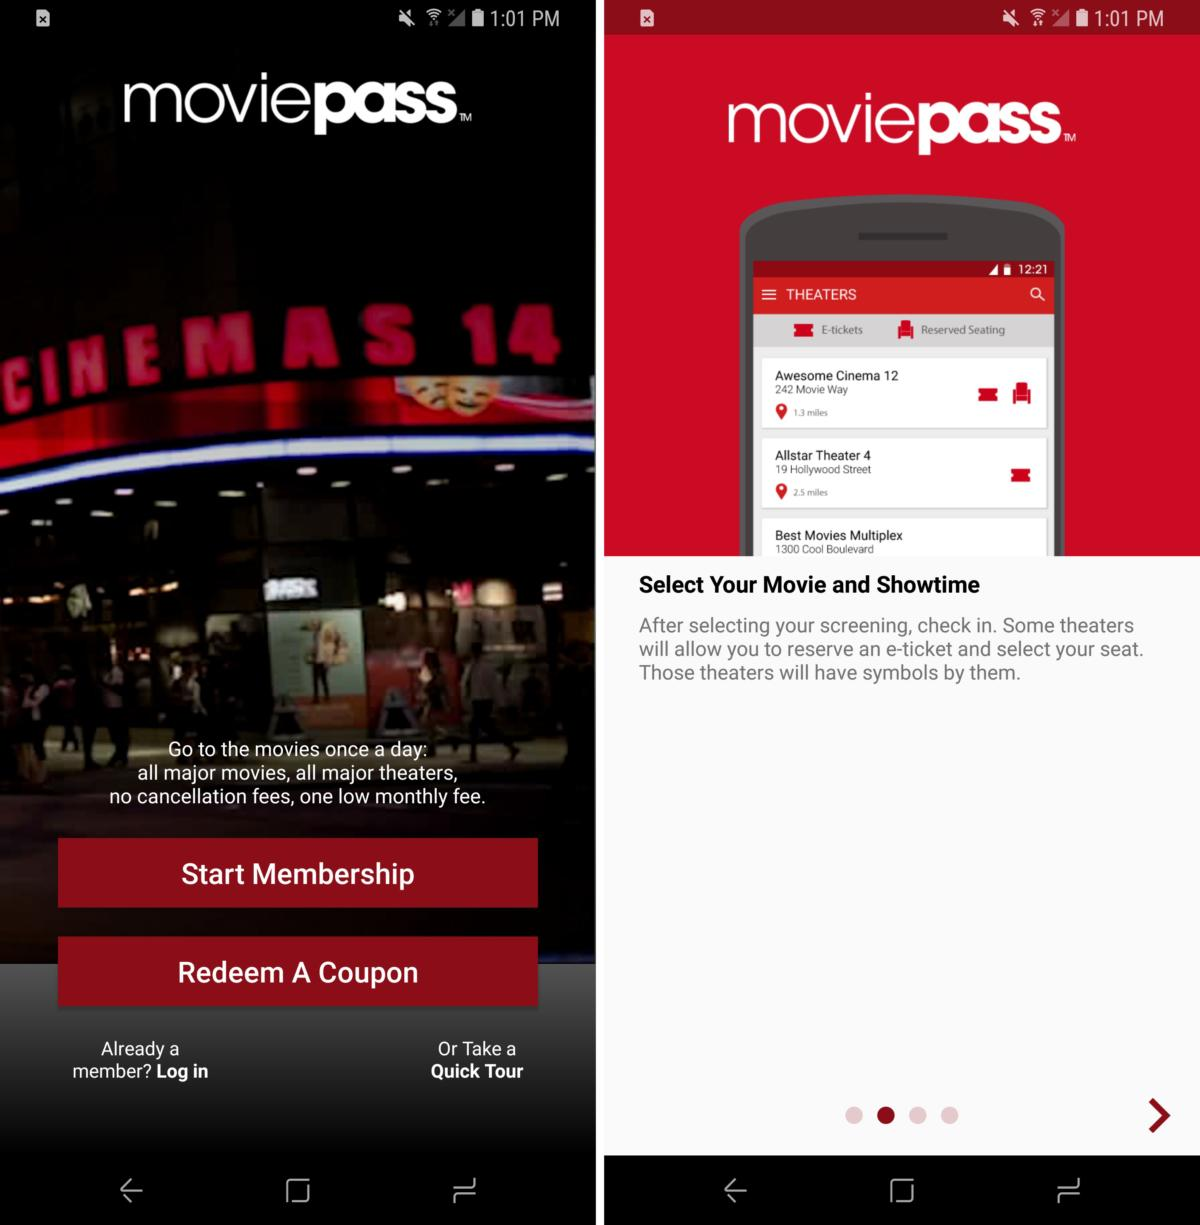 fivetotry aug18 moviepass